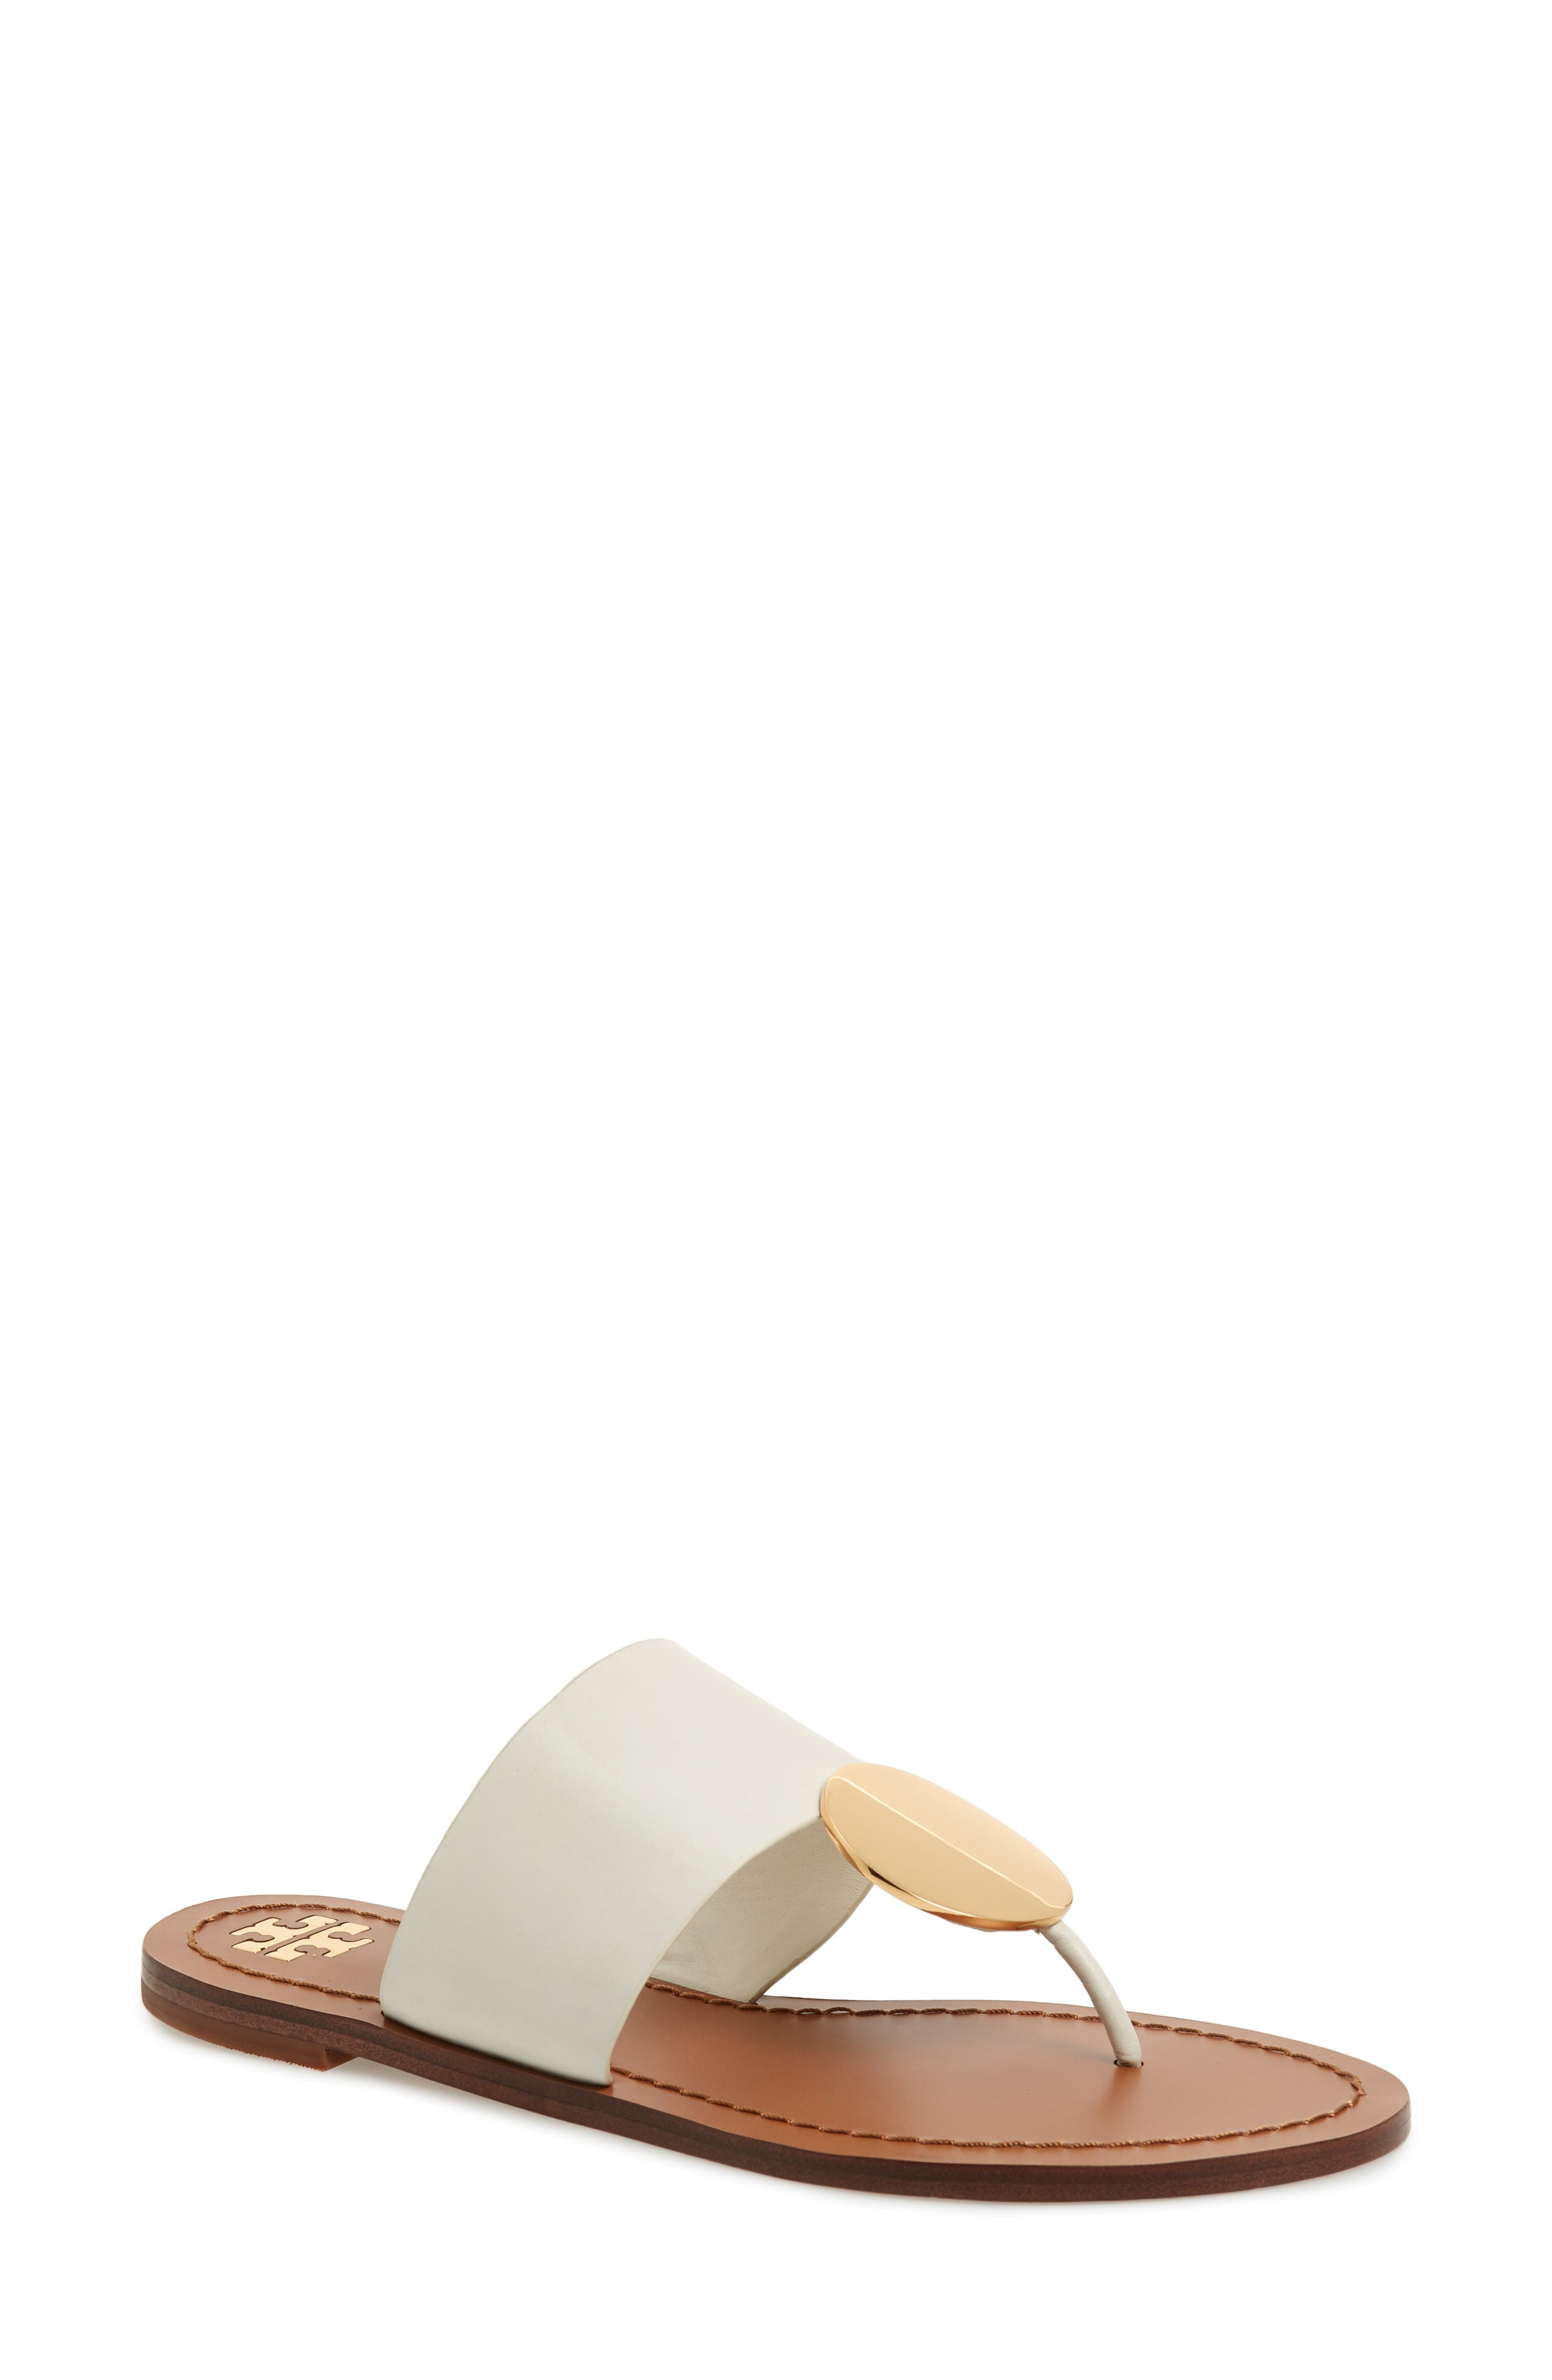 9dd055198453b0 Tory Burch Women S Patos Disk Leather Thong Sandals In Perfect Ivory  Gold